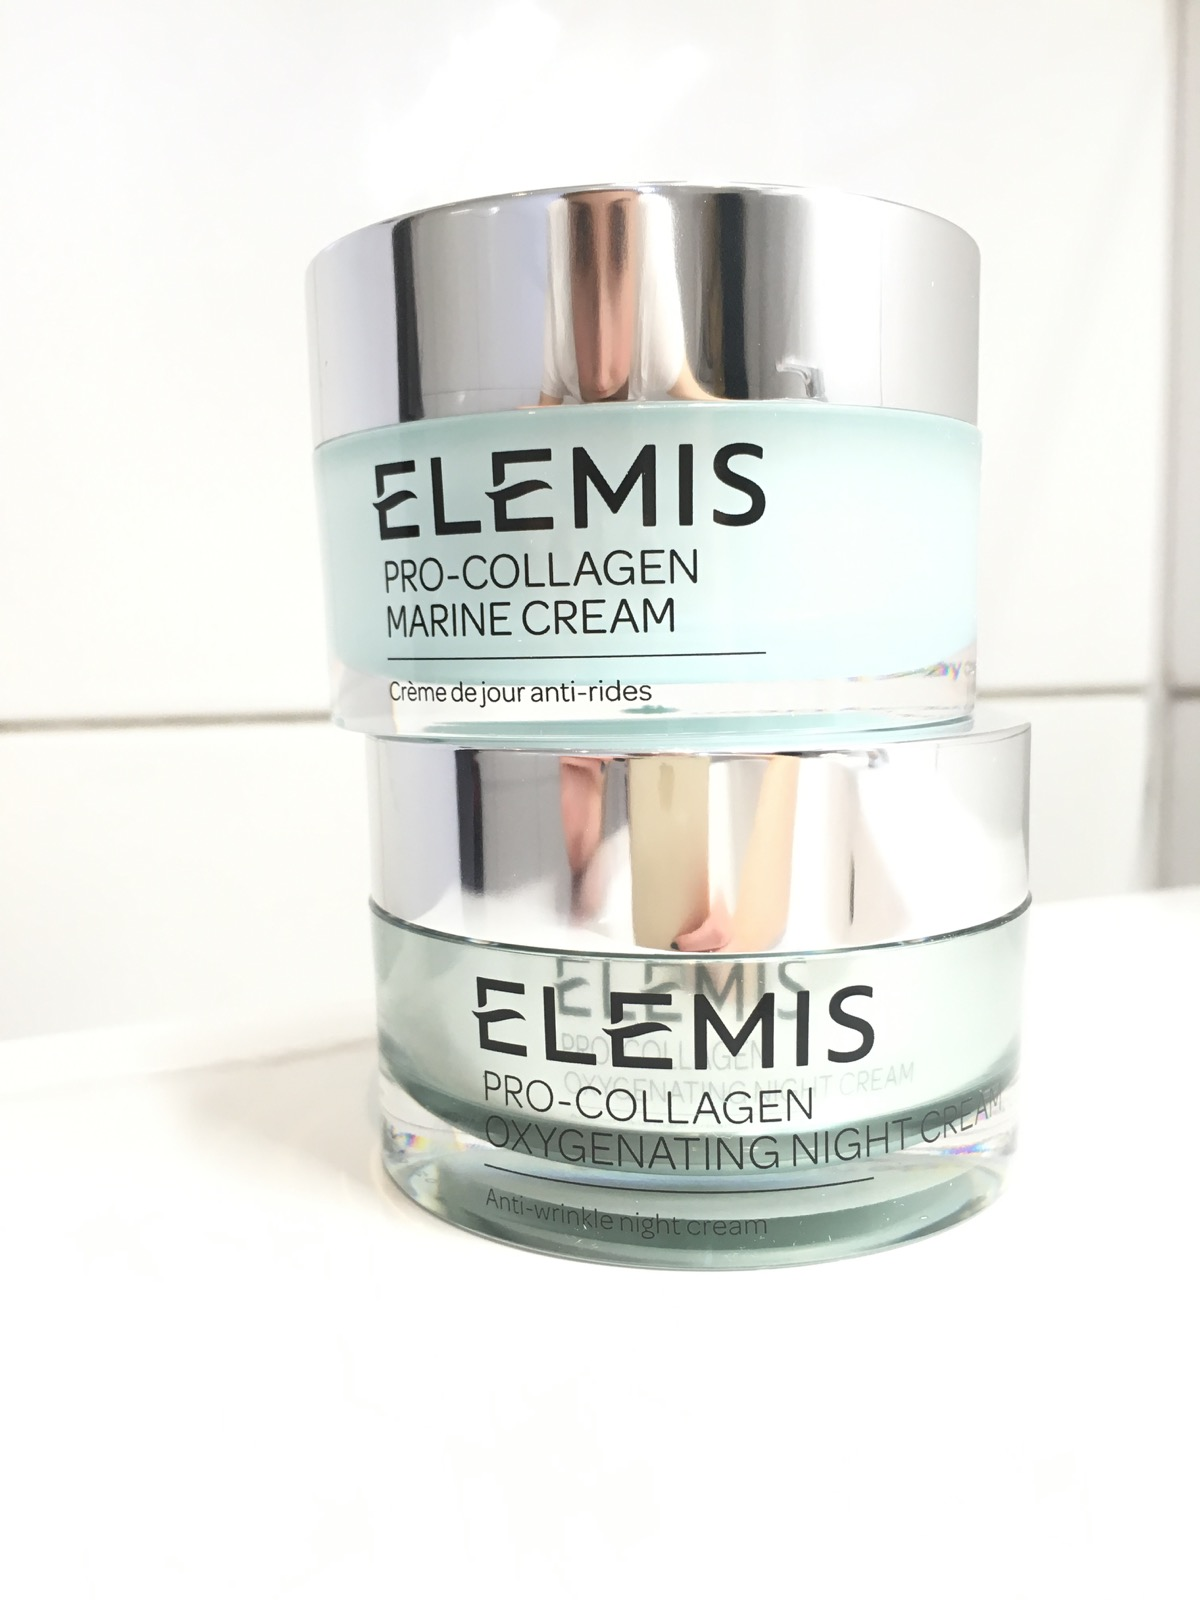 Elemis Pro-Collagen Day & Night Cream|skonhetssnack.se